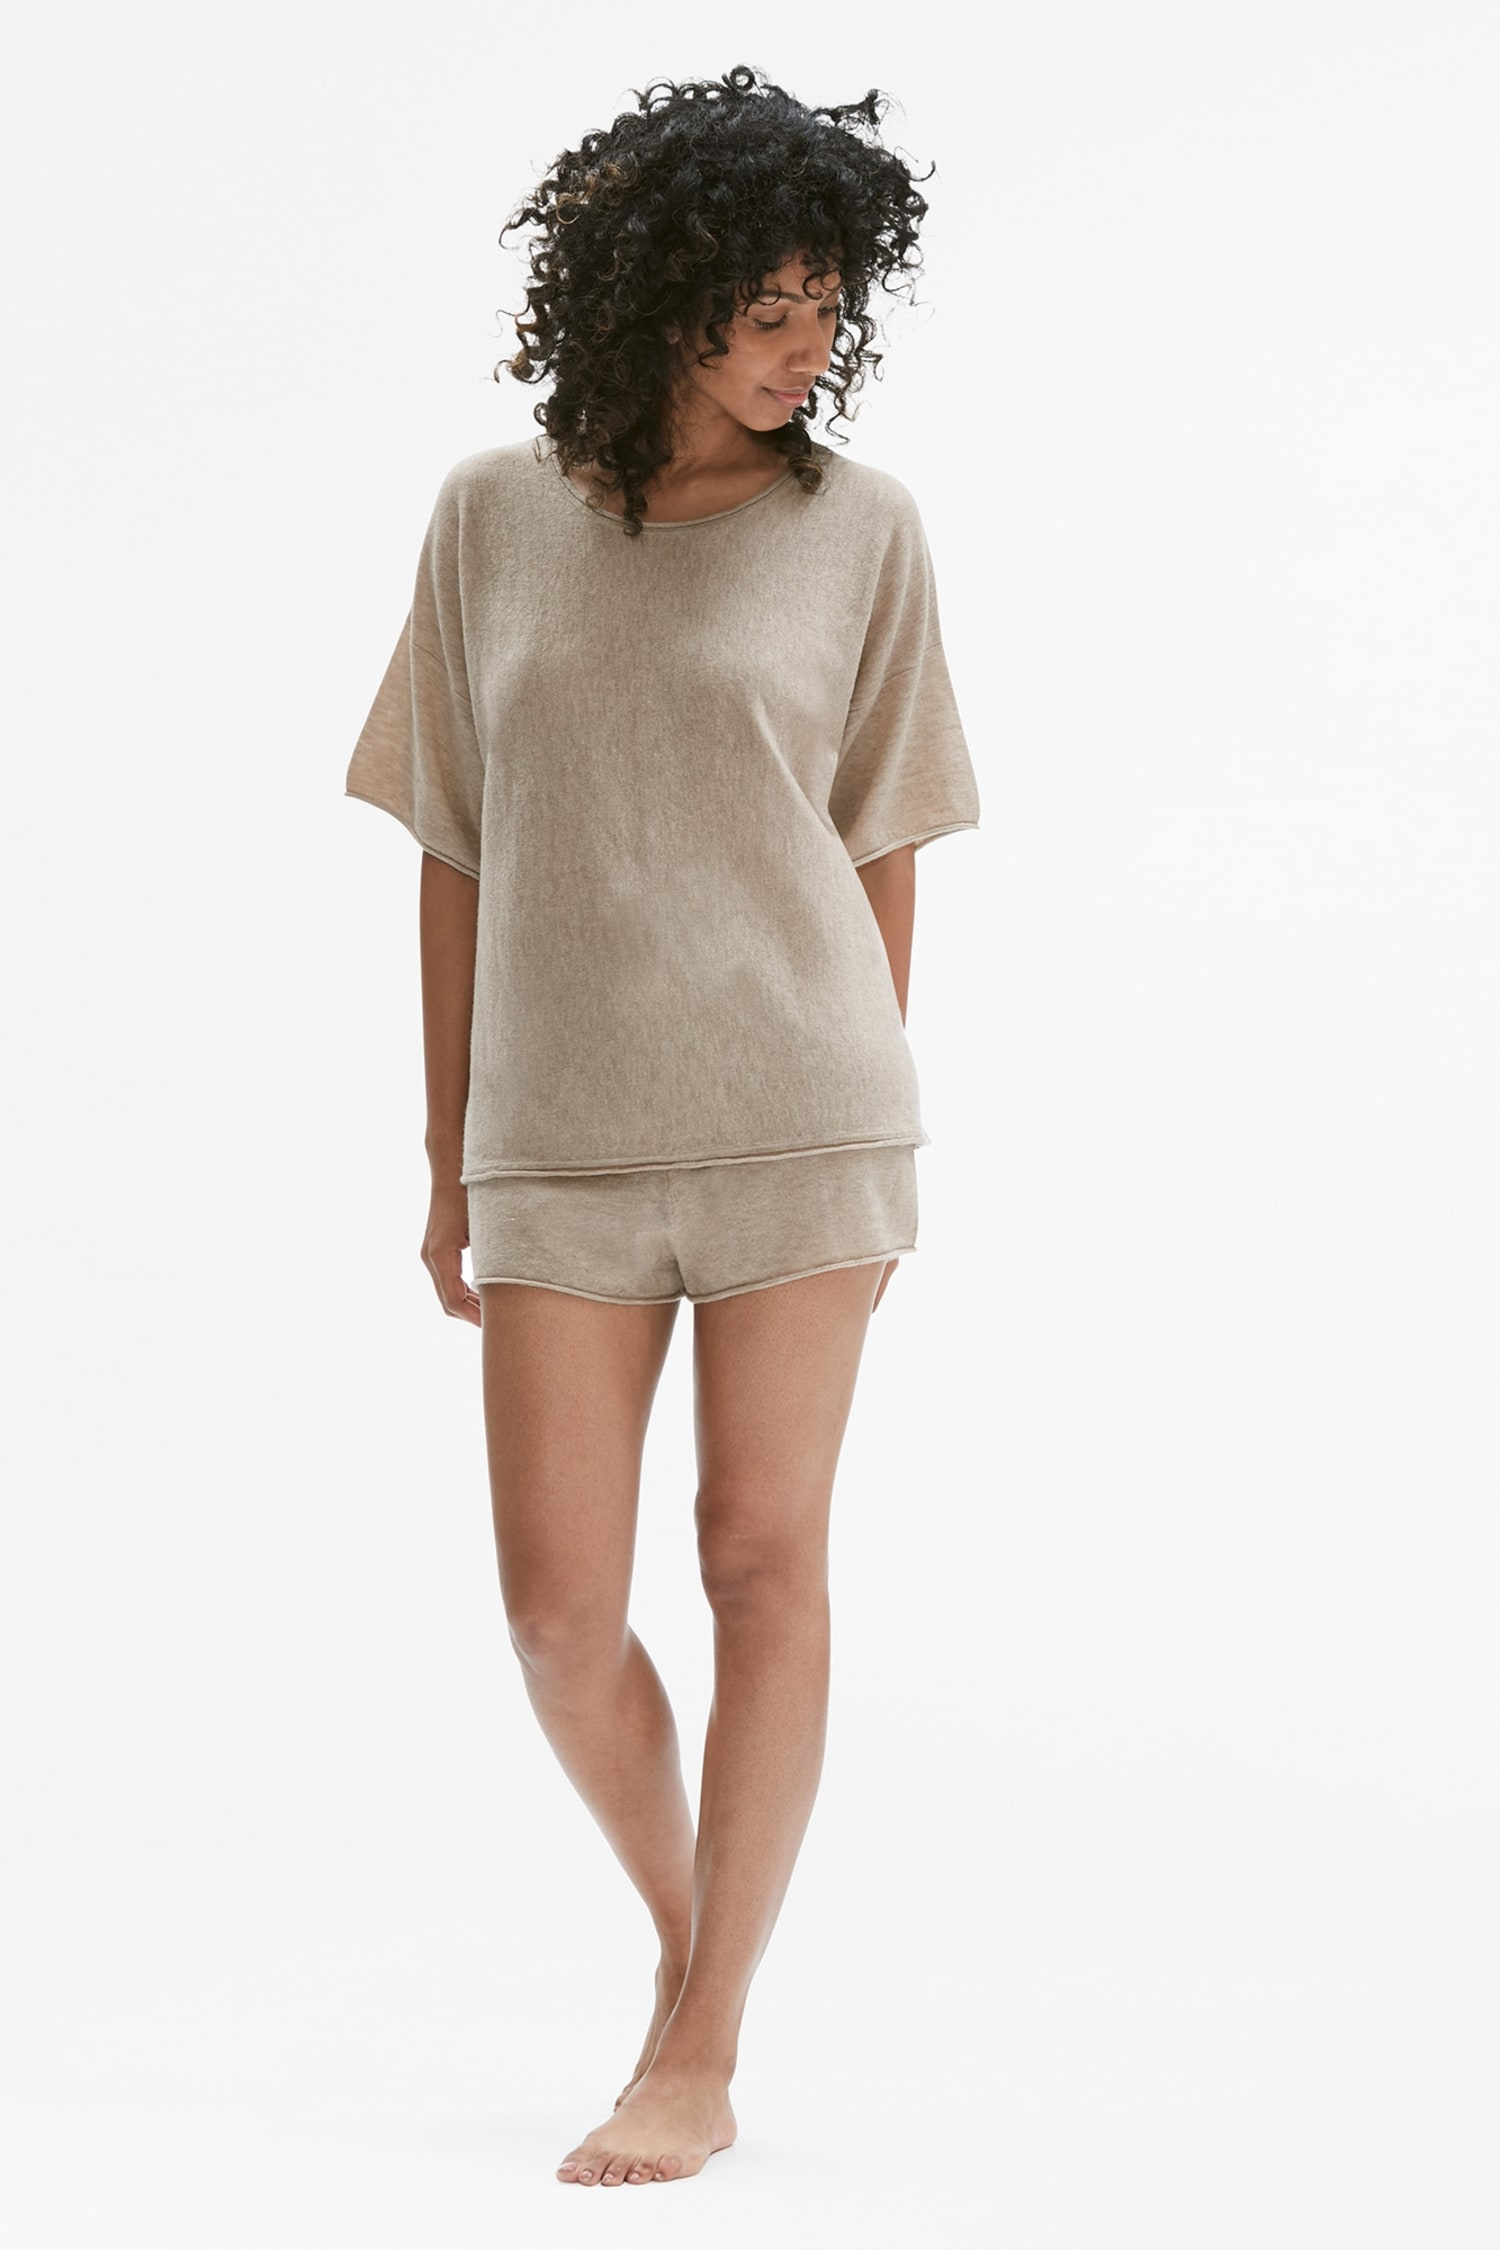 b37b62d3e3e8 Cashmere Pajama Set    Heather Oatmeal 1